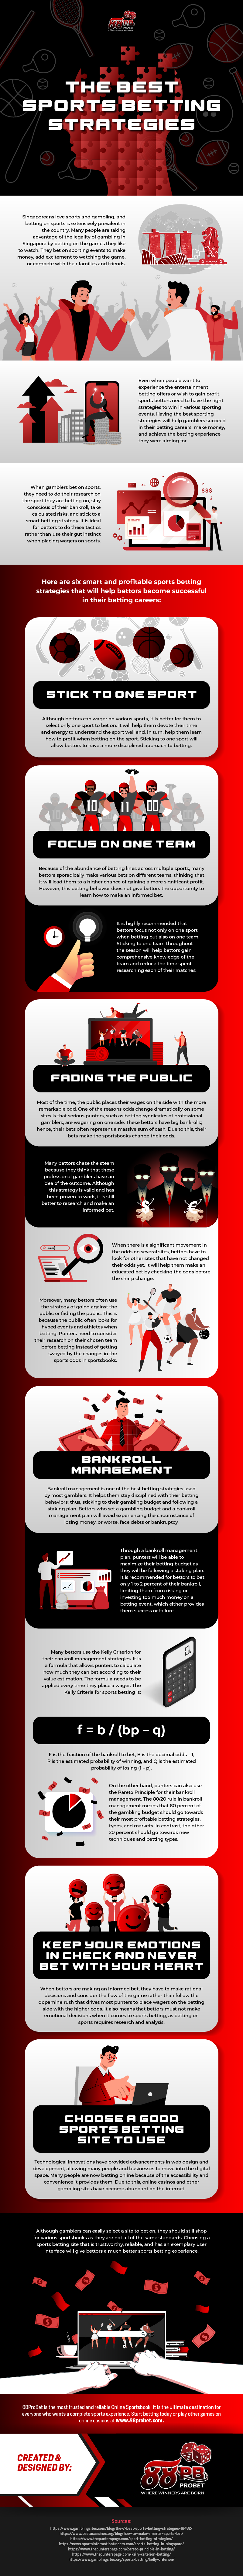 The Best Sports Betting Strategies Infographic